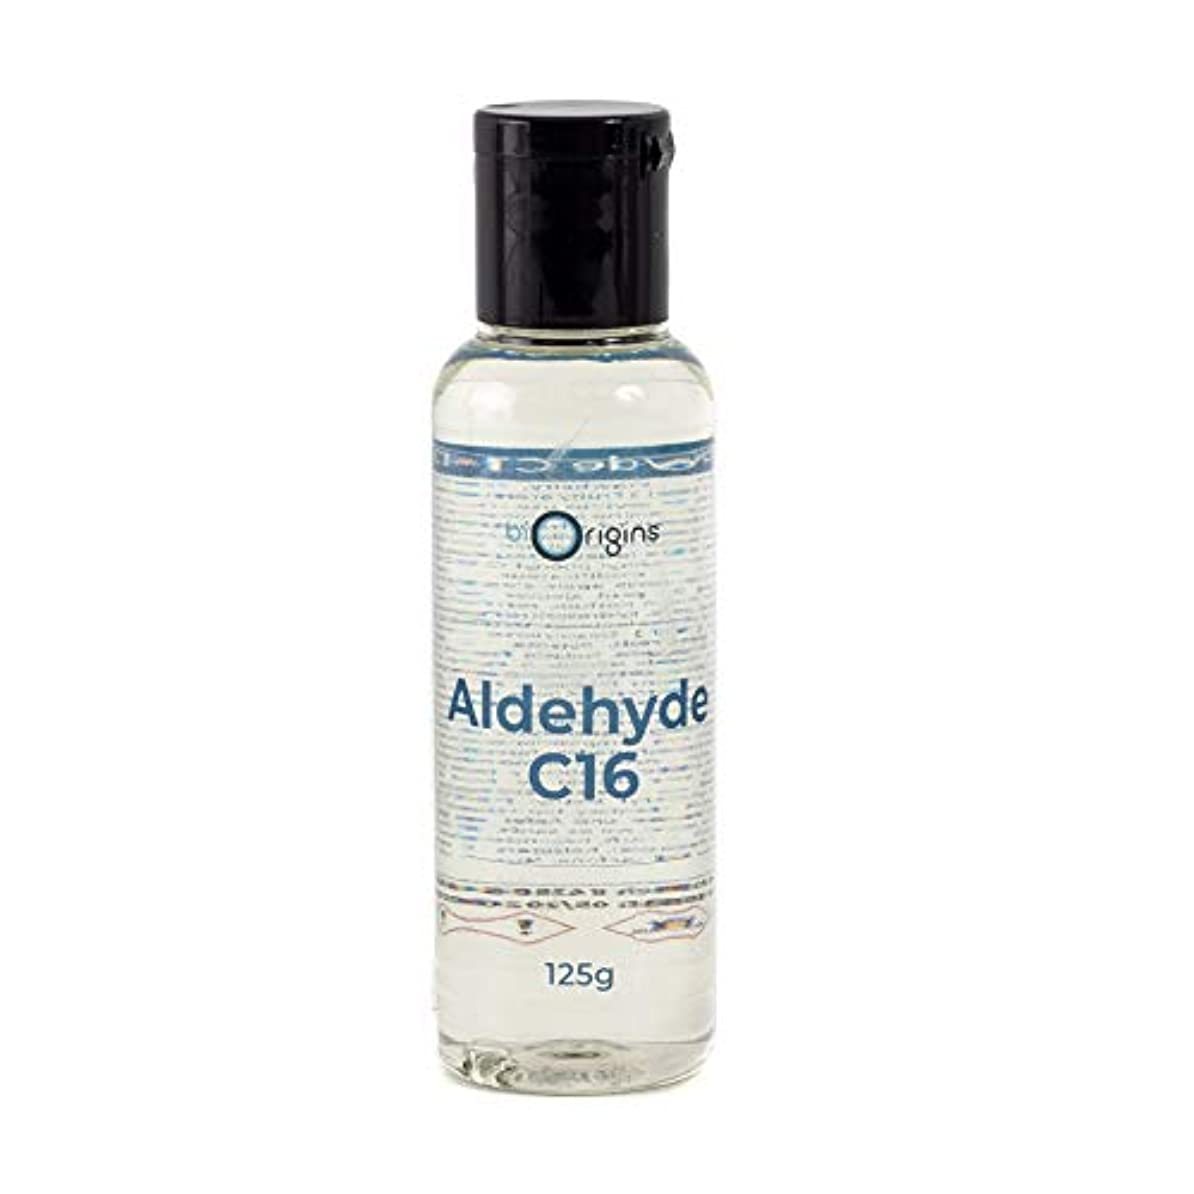 証人カメラセンサーMystic Moments | Aldehyde C16 (Ethyl Methyl Phenyl Glycidate) - 250g